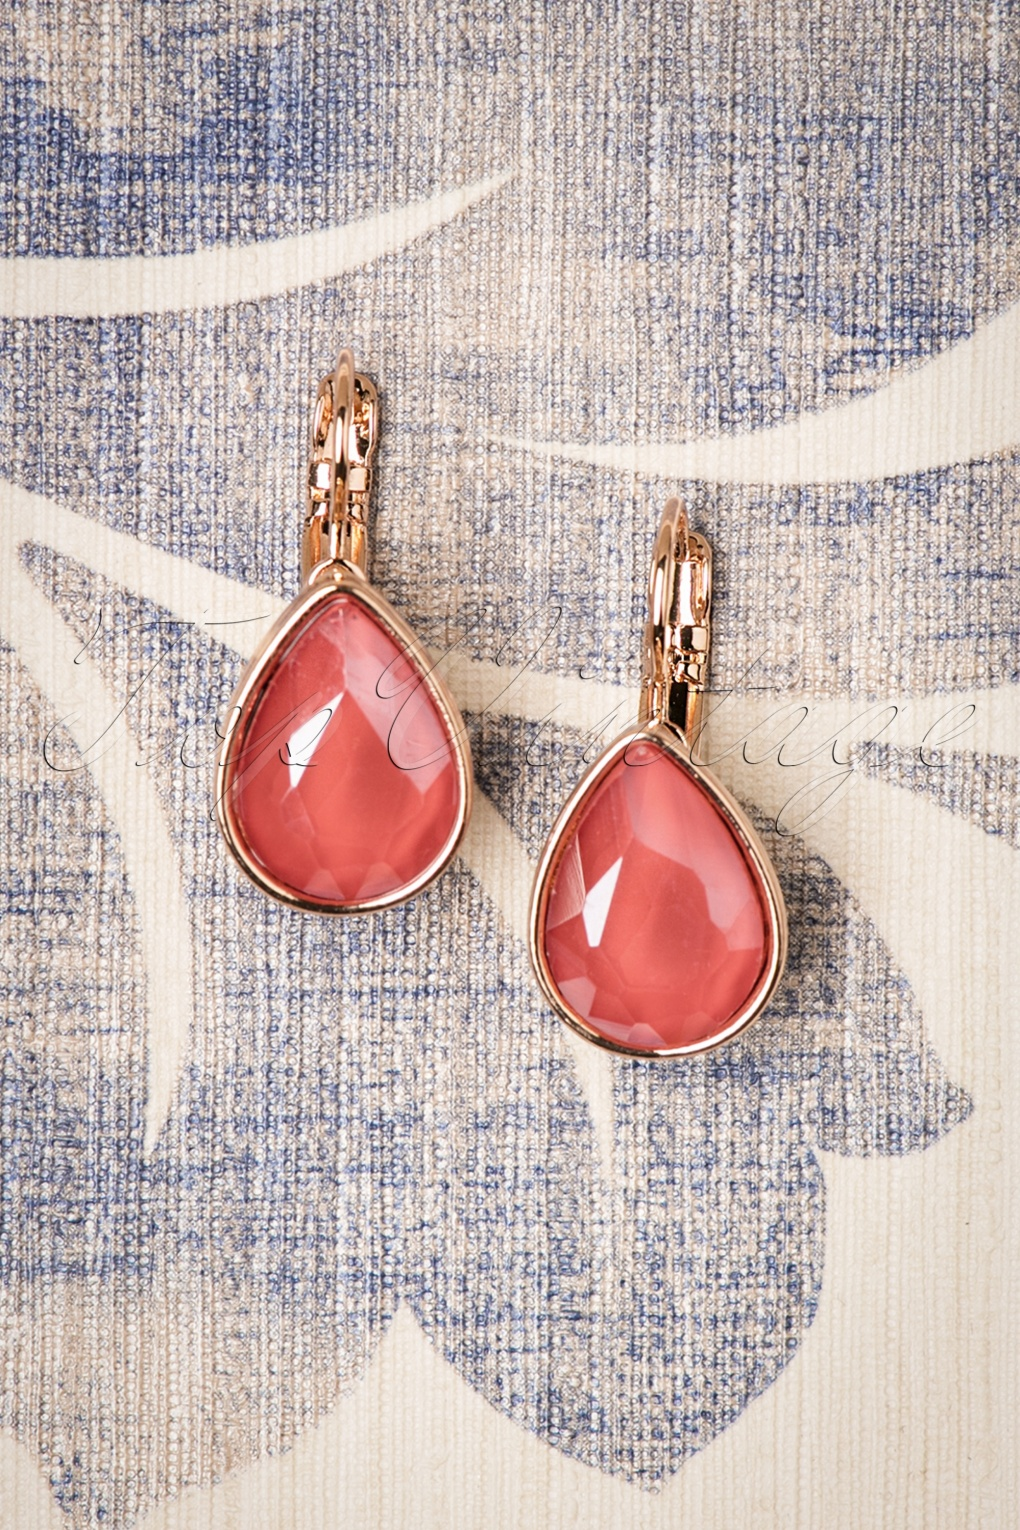 50s Jewelry: Earrings, Necklace, Brooch, Bracelet 50s Vintage Teardrop Earrings in Coral £6.02 AT vintagedancer.com